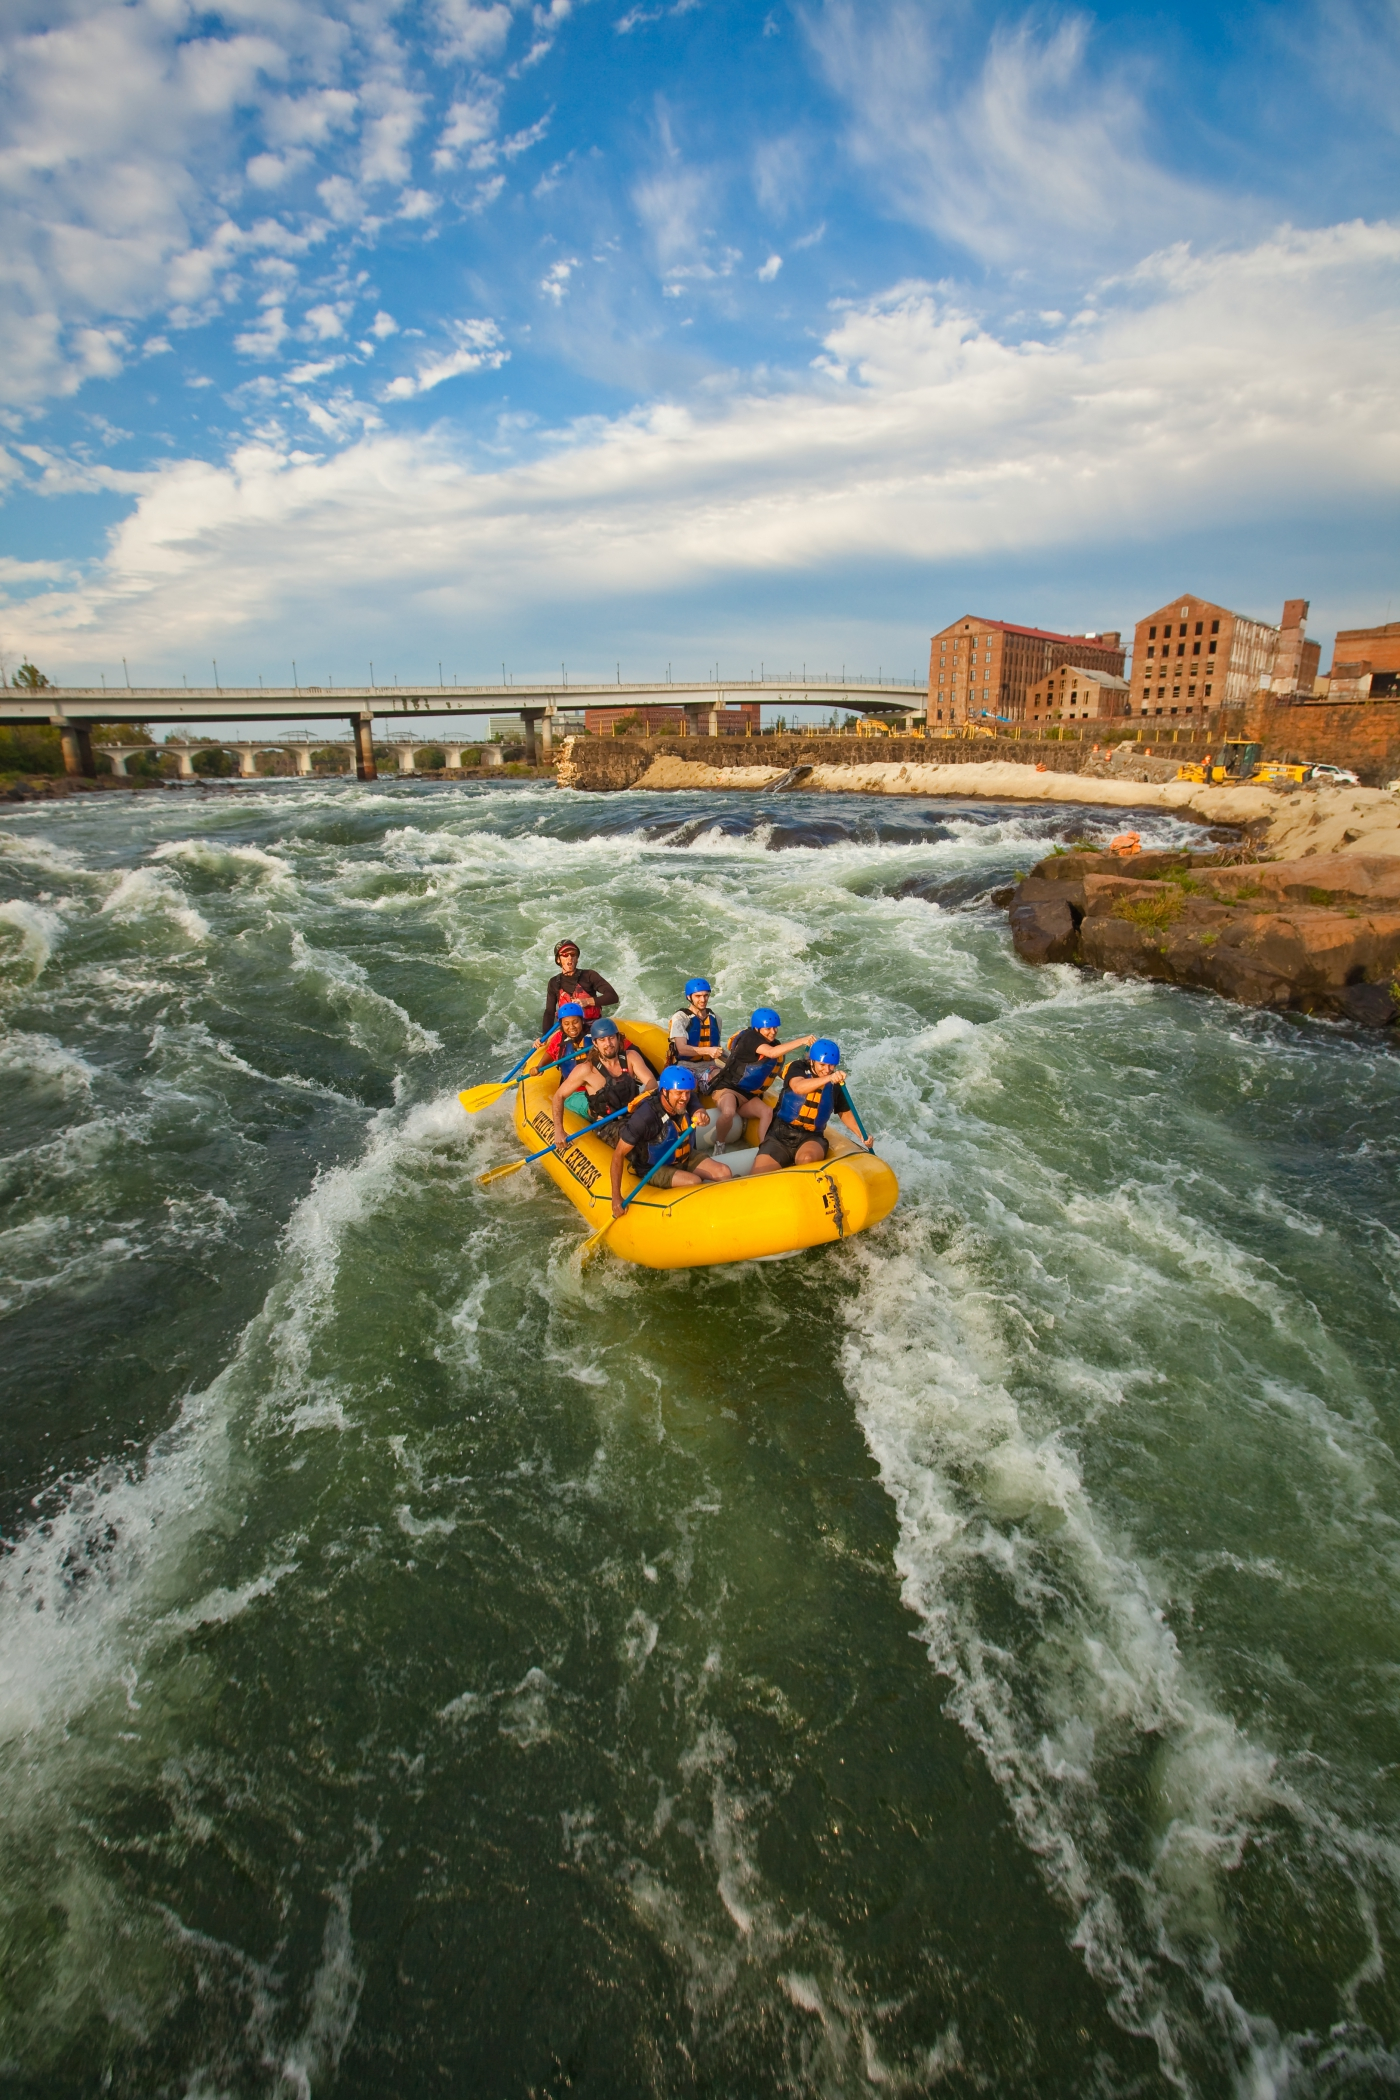 Master the longest urban whitewater course in the world on the Chattahoochee River right through downtown Columbus.